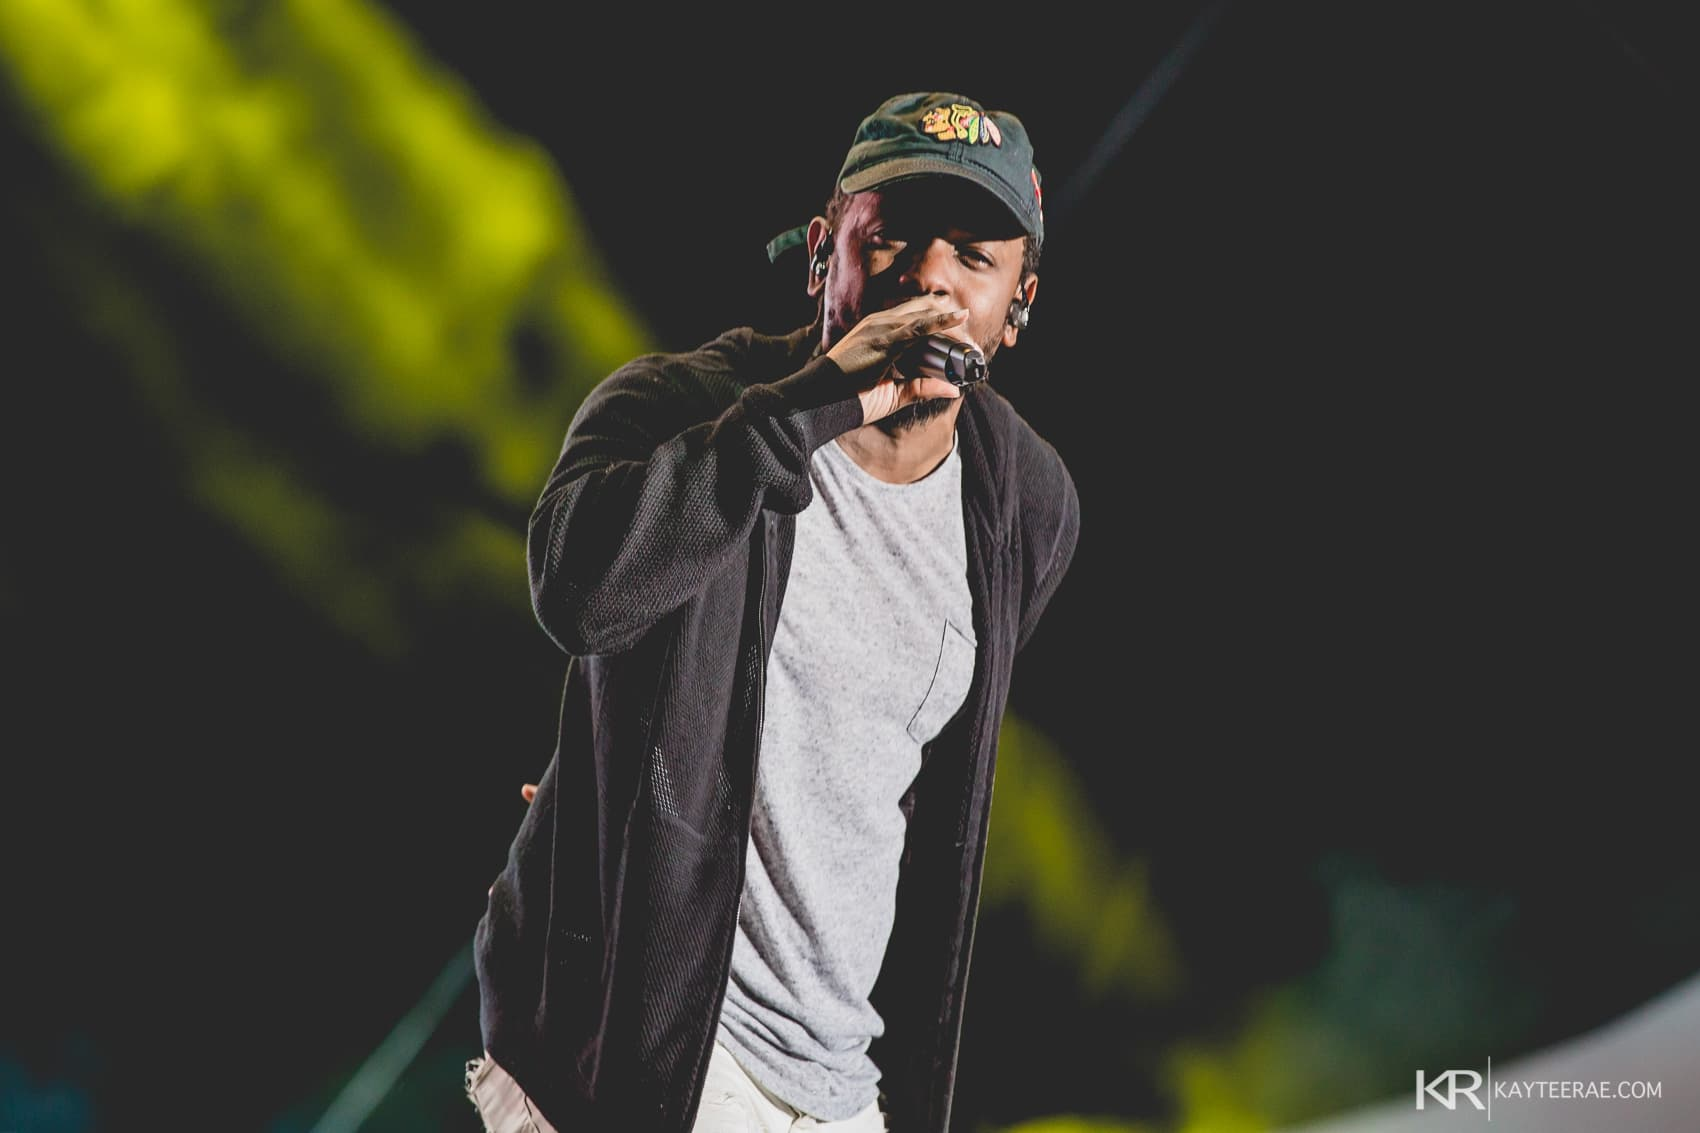 Kendrick Lamar Wallpaper on Hd Technology For Cars